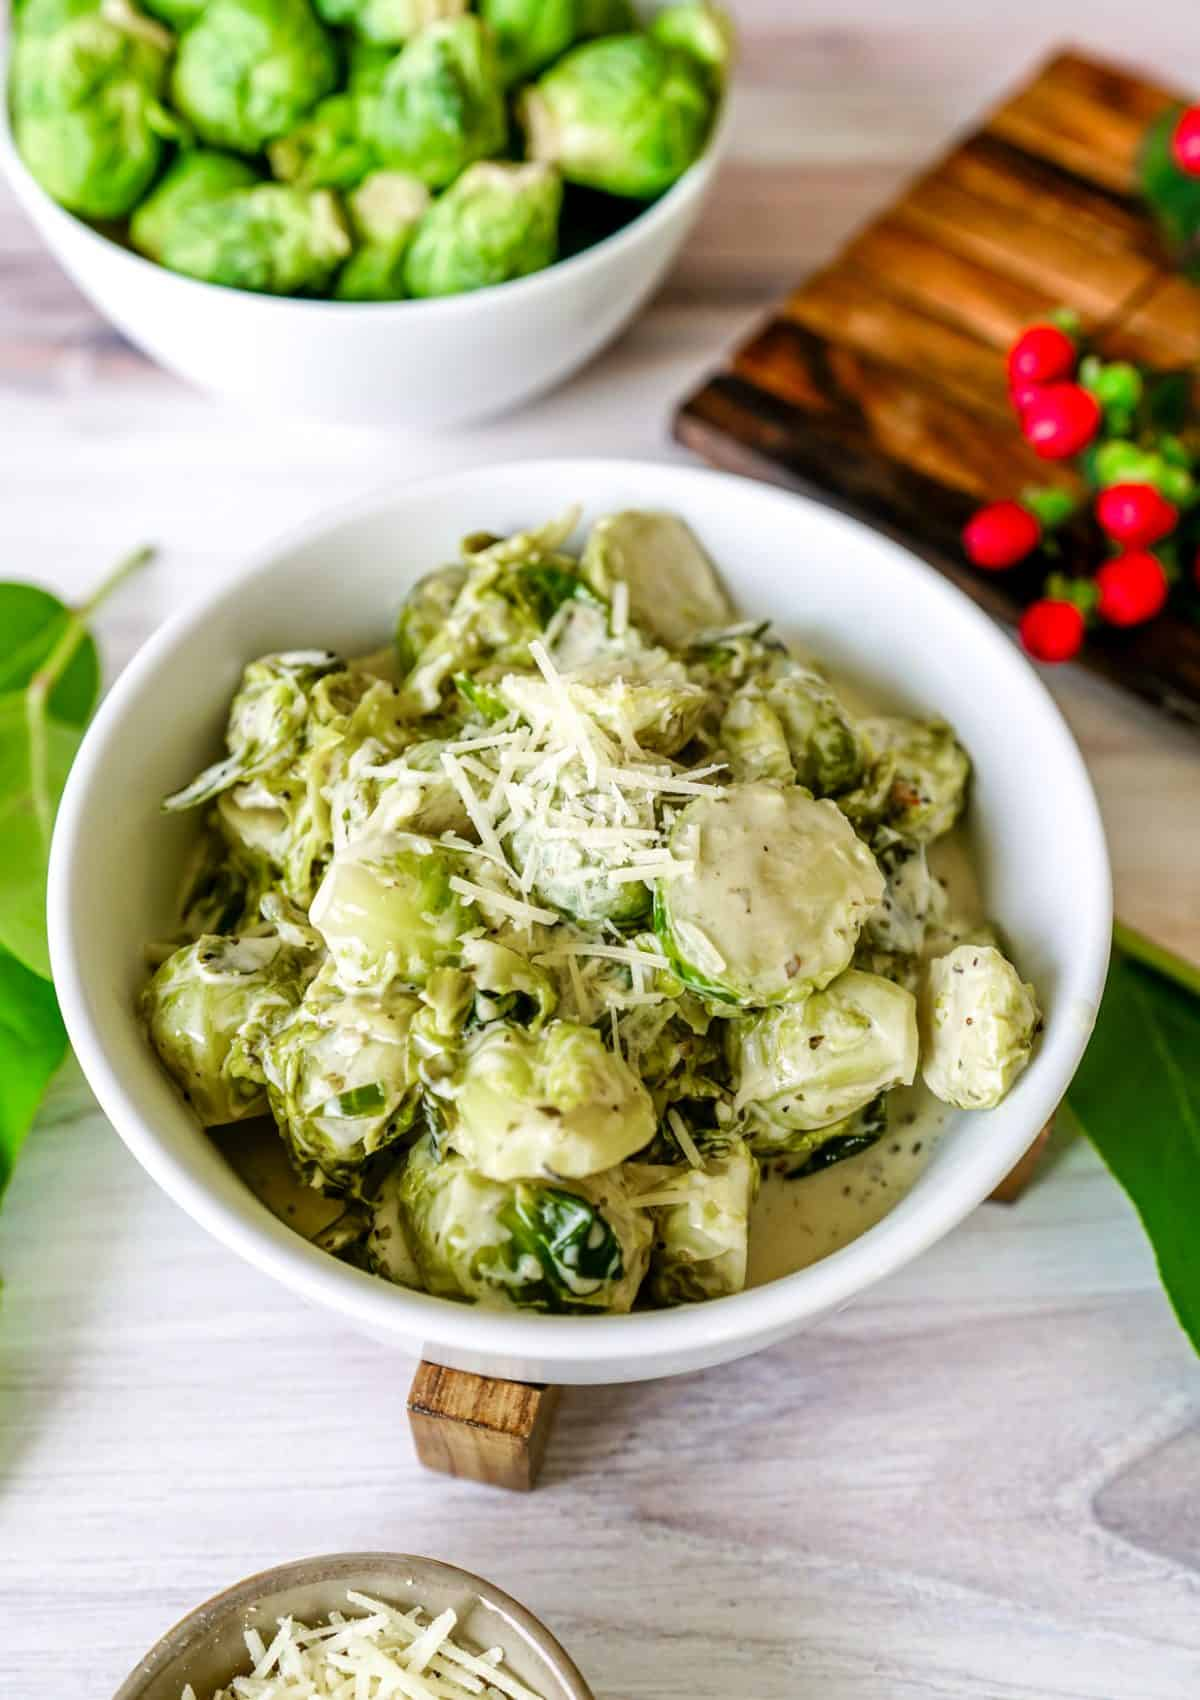 Instant Pot Creamy Parmesan Garlic Brussel Sprouts